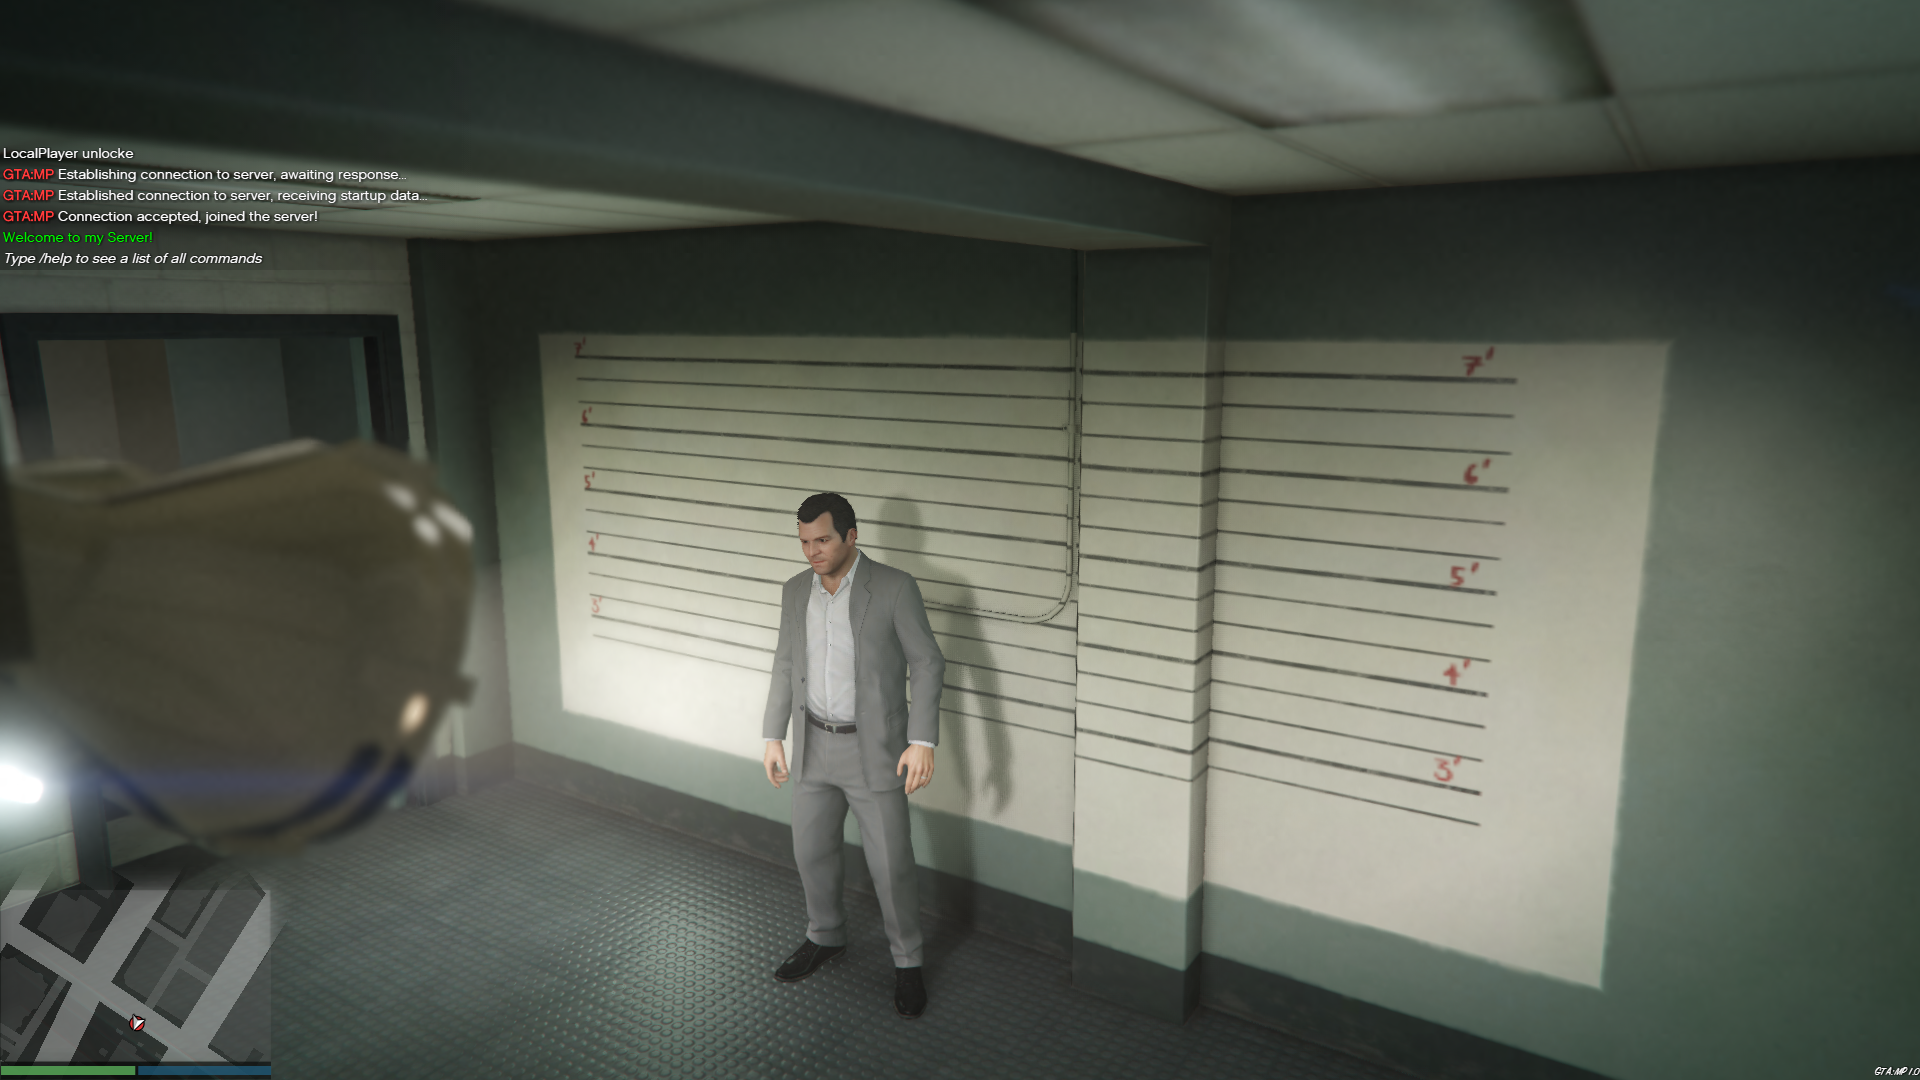 GTA:Multiplayer Development Blog #20 news - GTA:MP mod for Grand